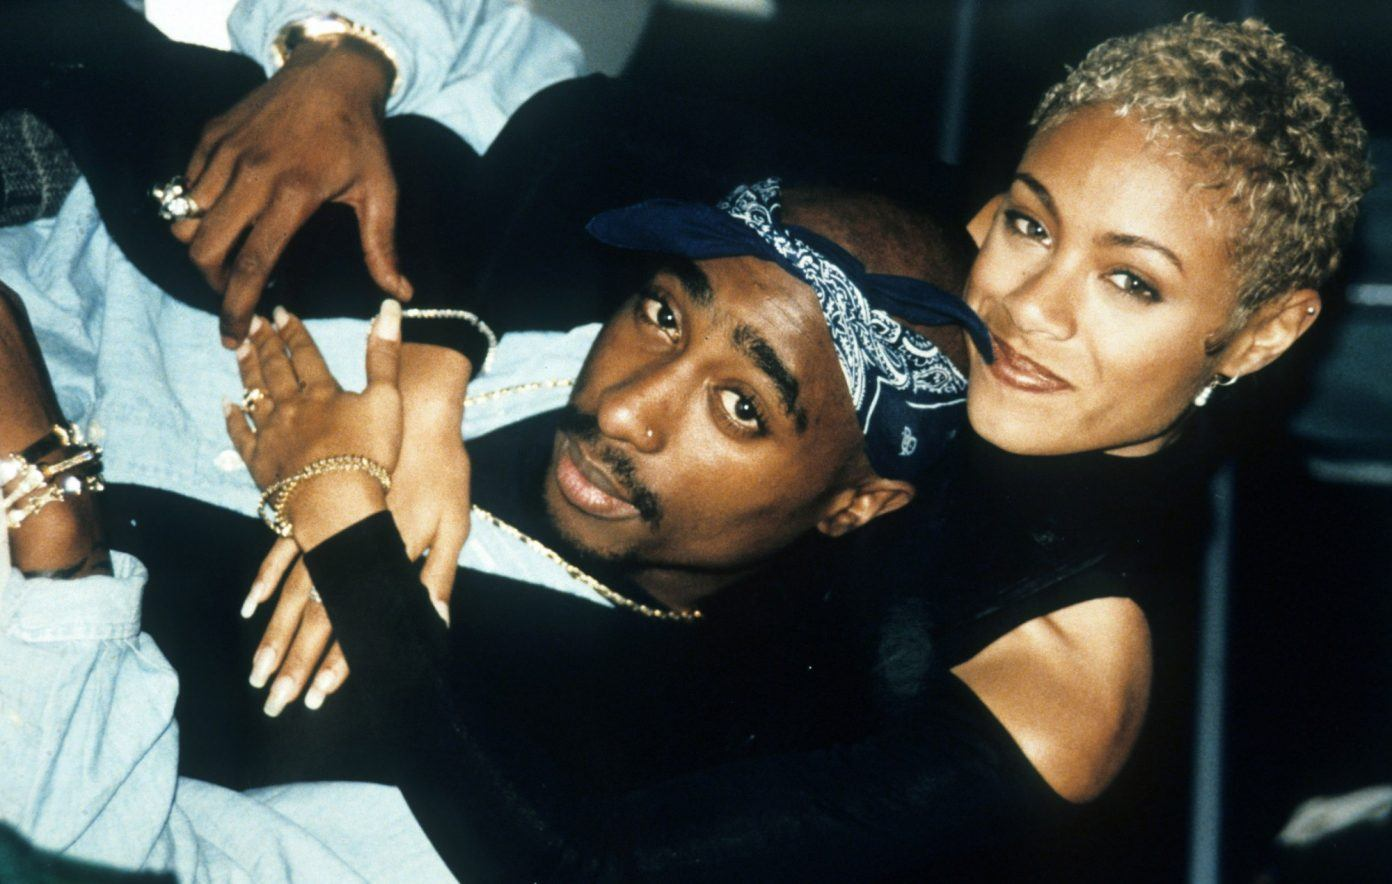 Jada Pinkett Smith posts never-before-seen poem by Tupac for his 50th birthday